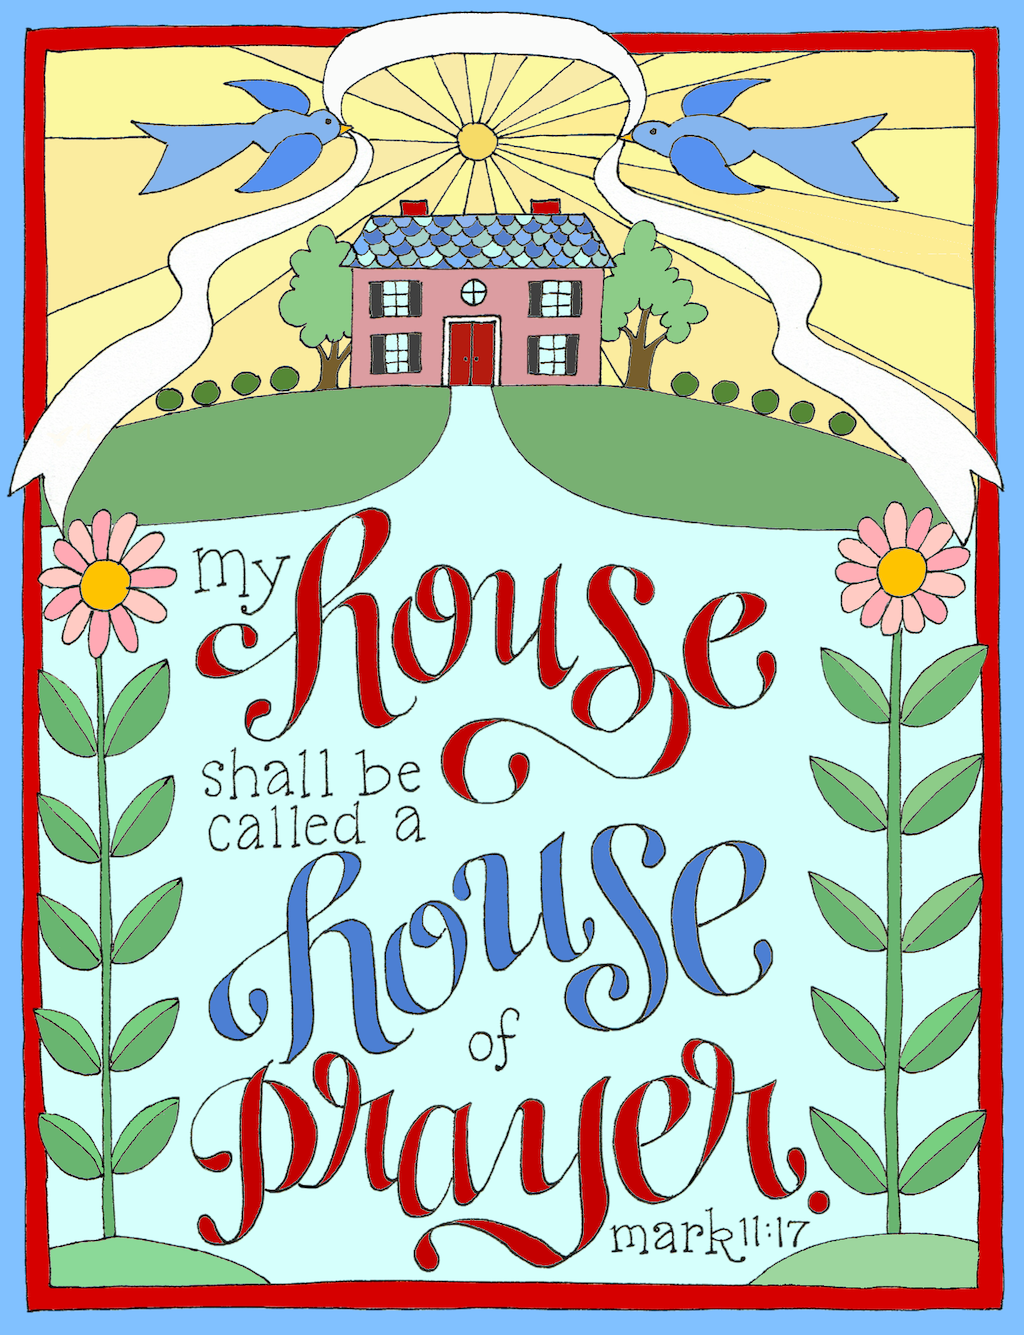 My House shall be called a House of Prayer